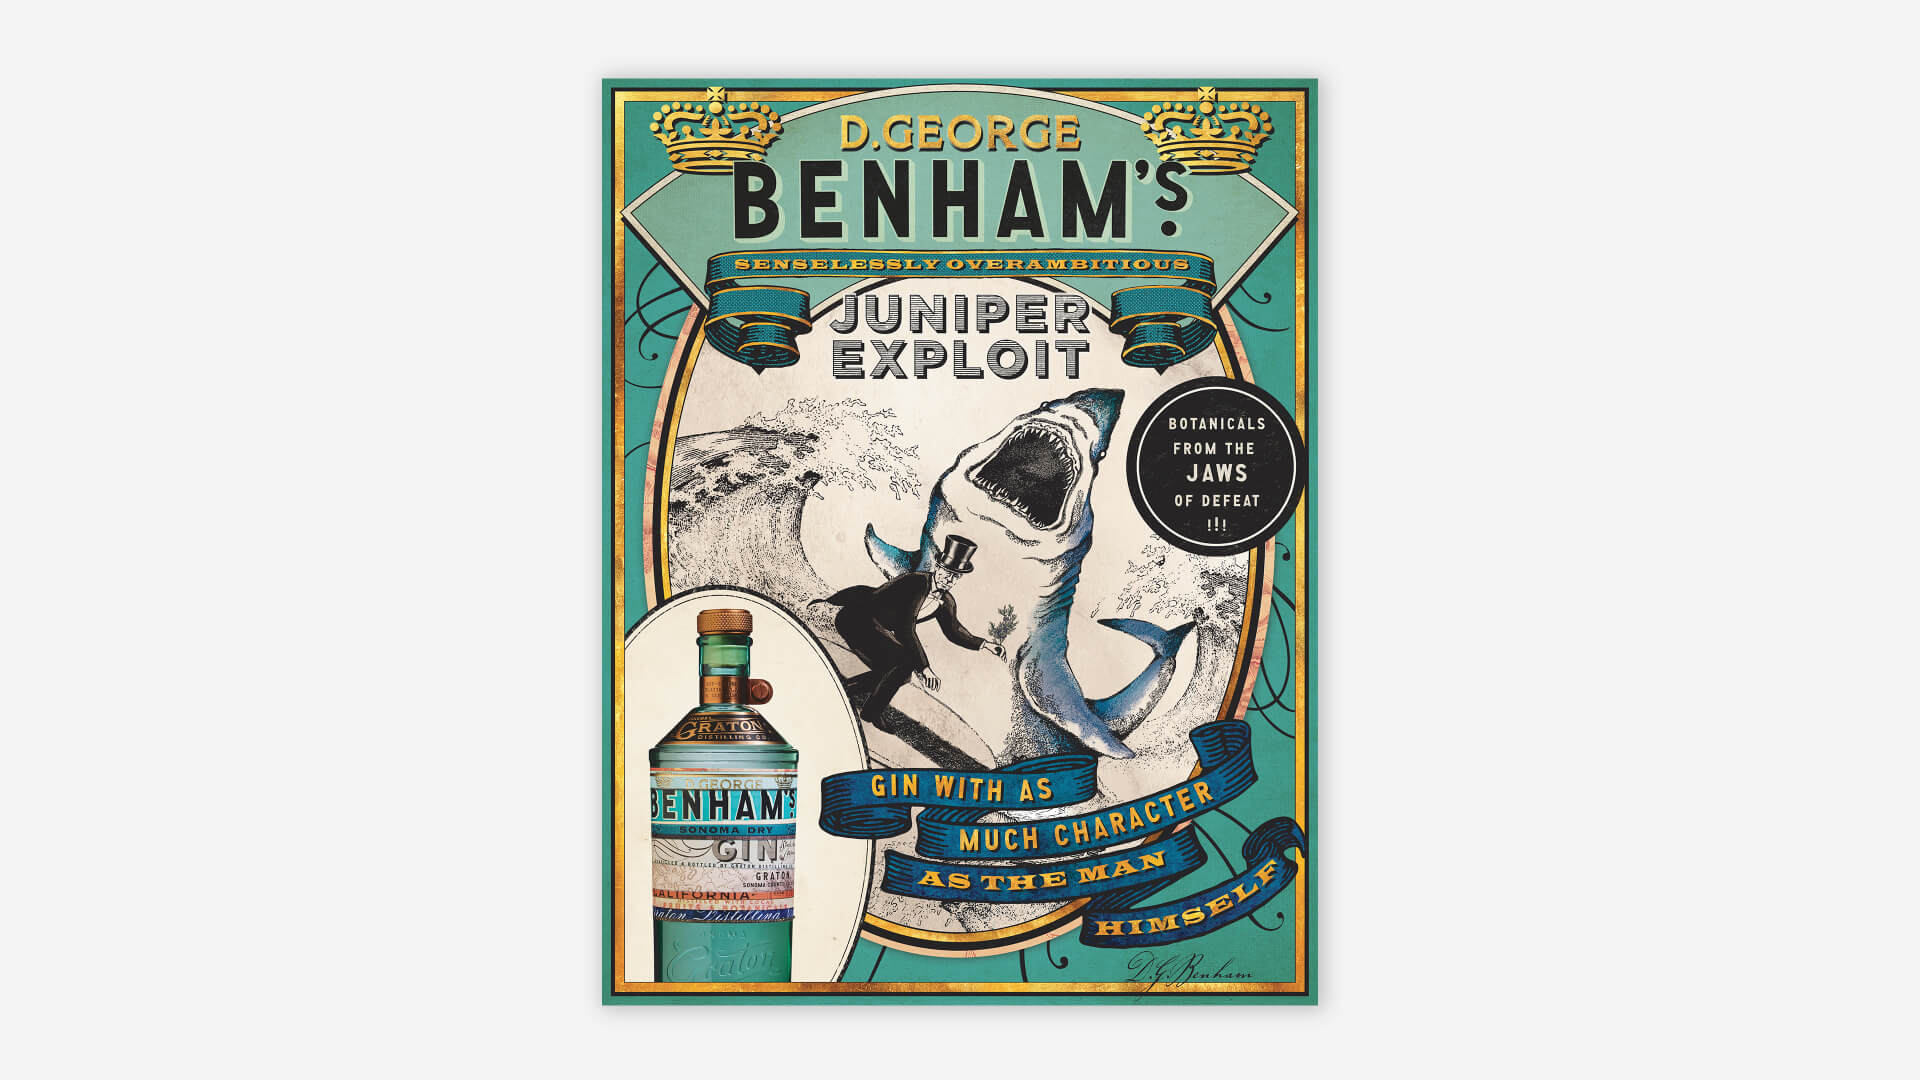 Benham's Leave-Behind